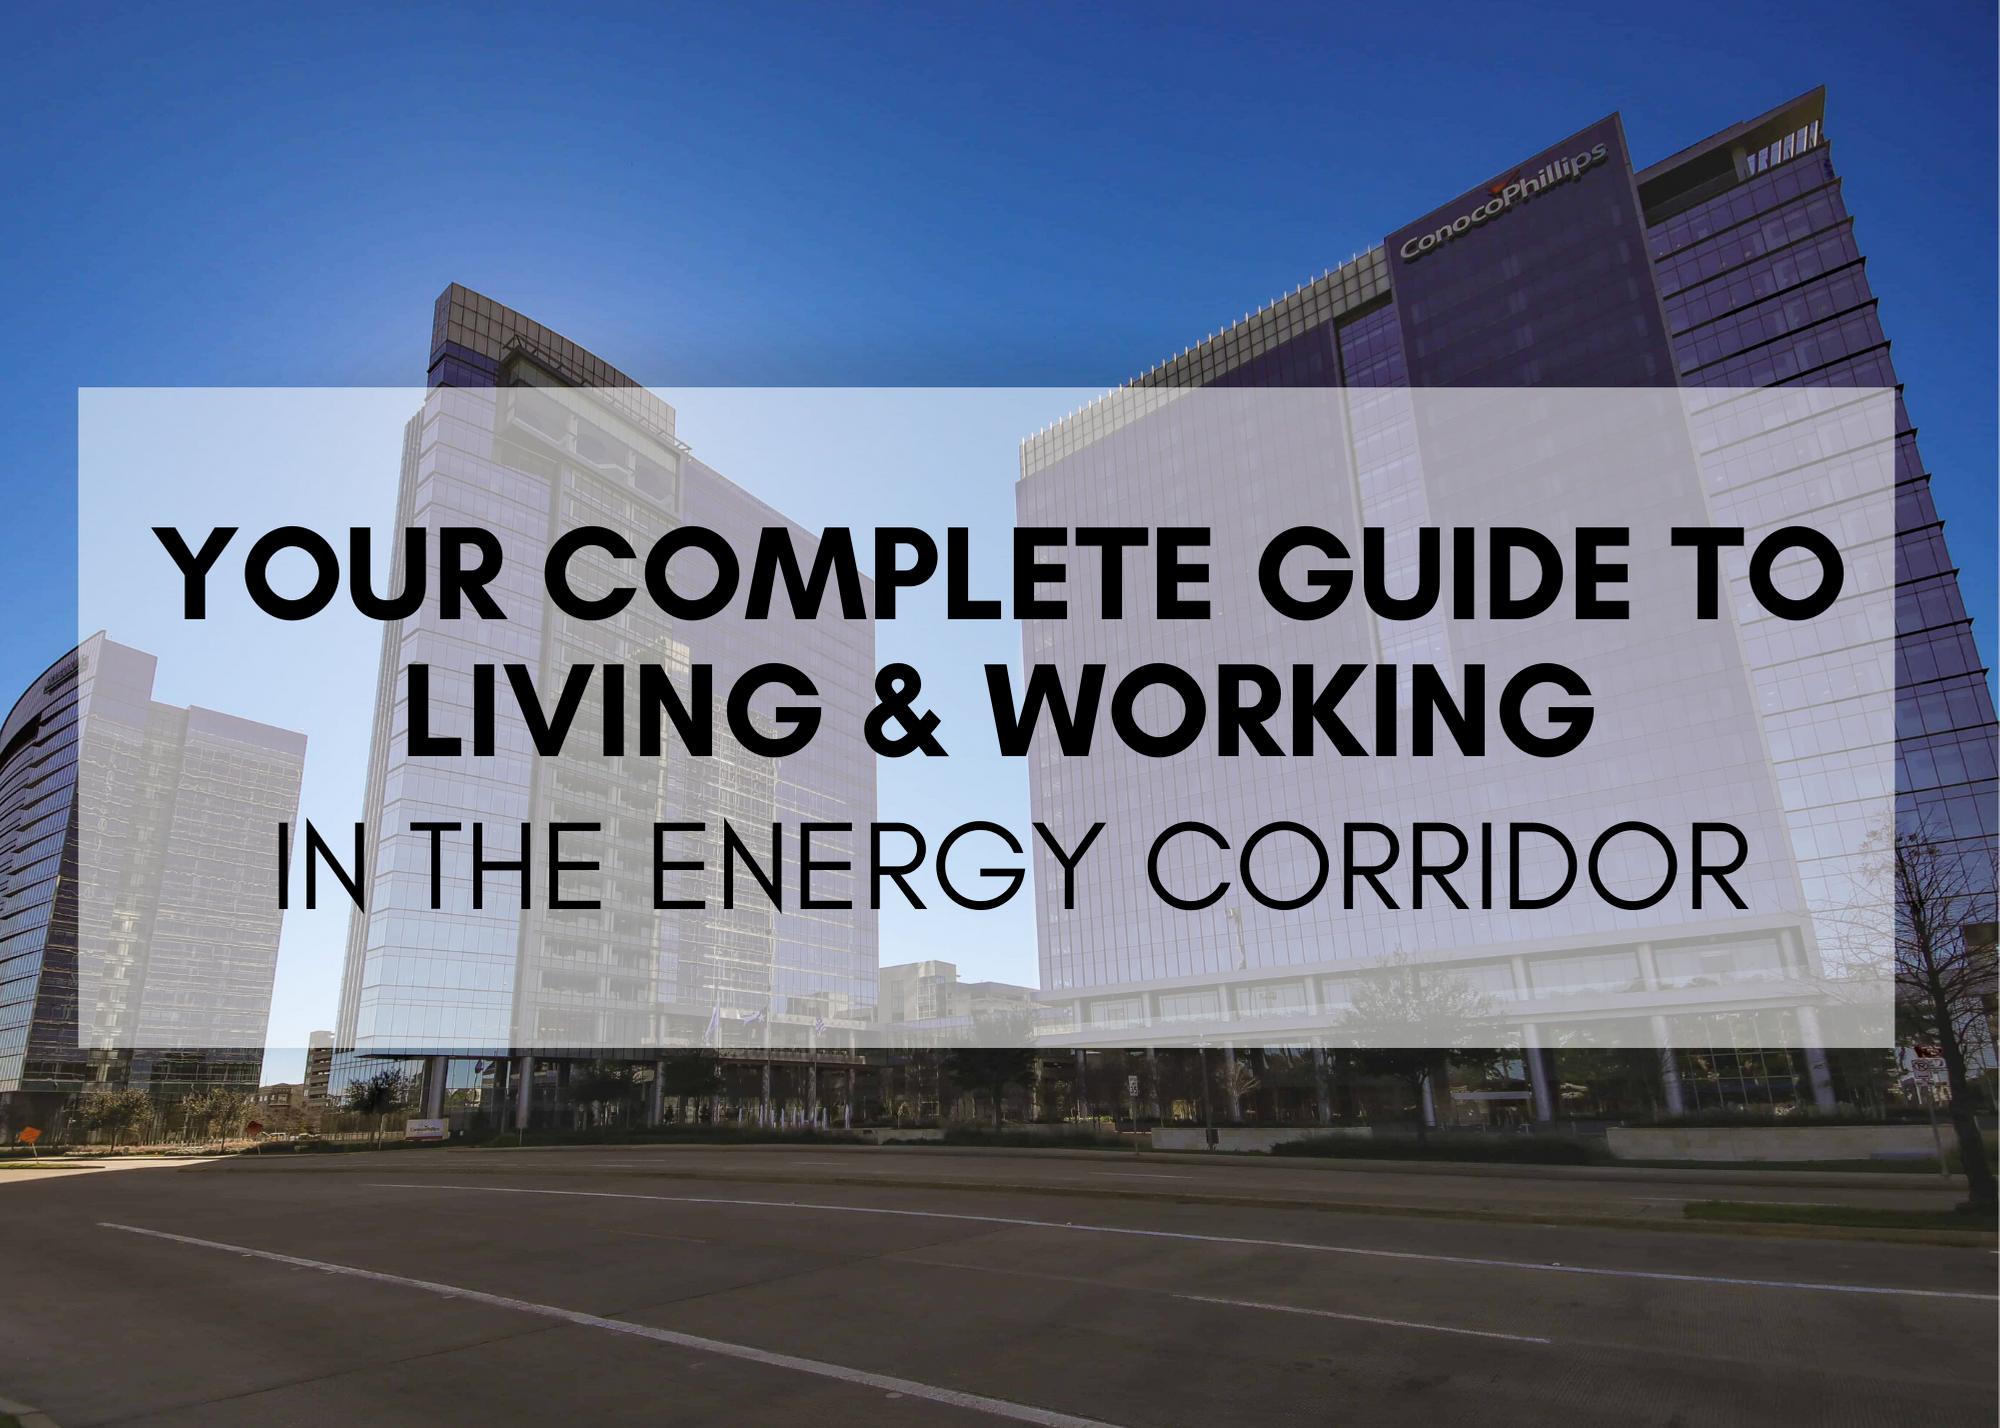 Your Complete Guide to Living & Working in the Energy Corridor